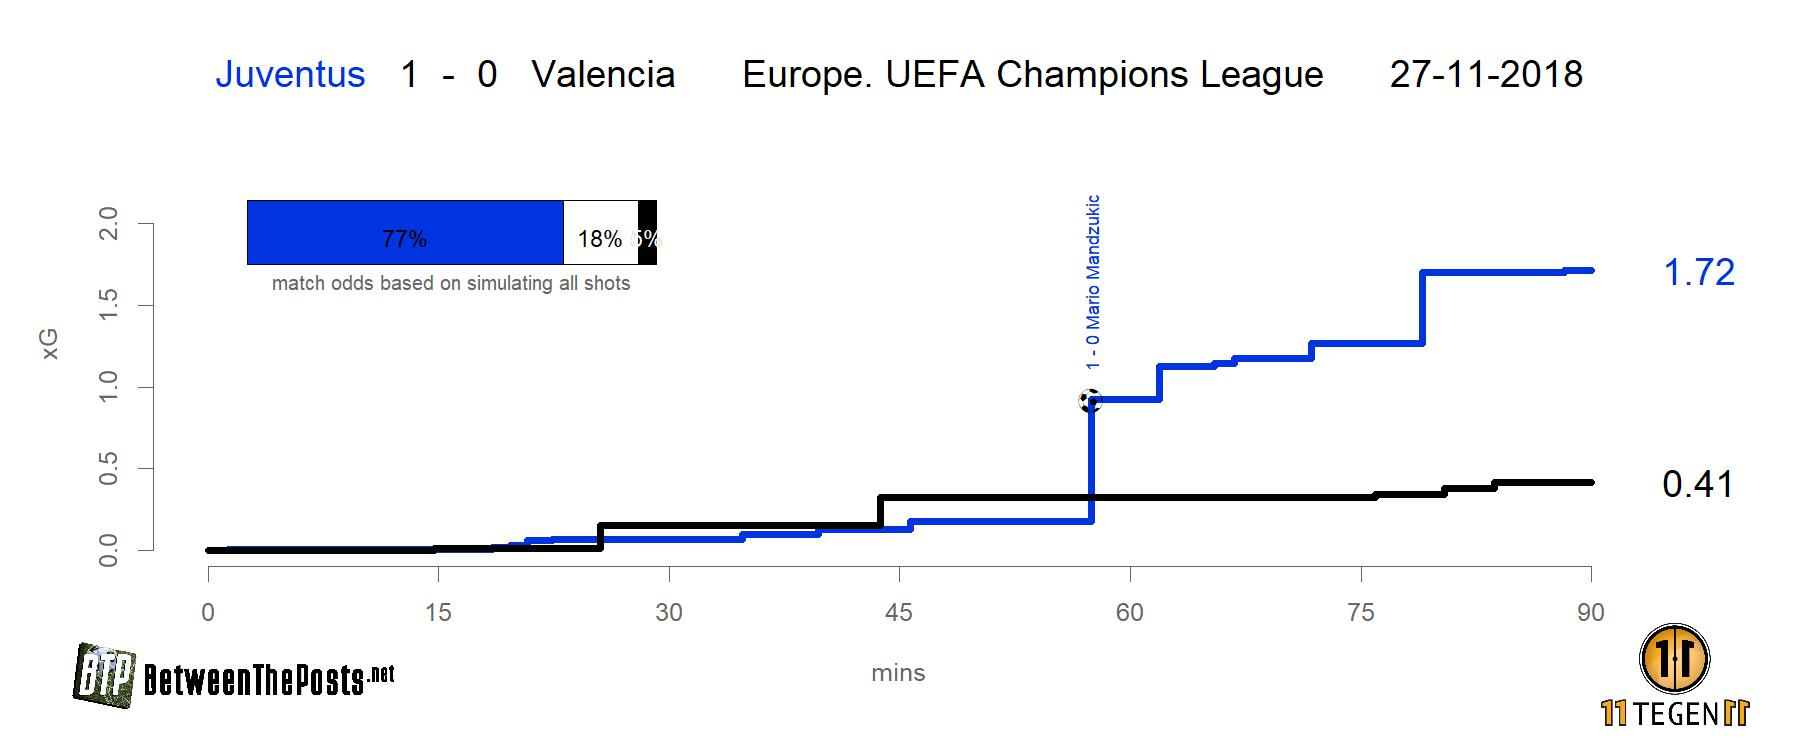 Expected goals plot Juventus - Valencia 1-0